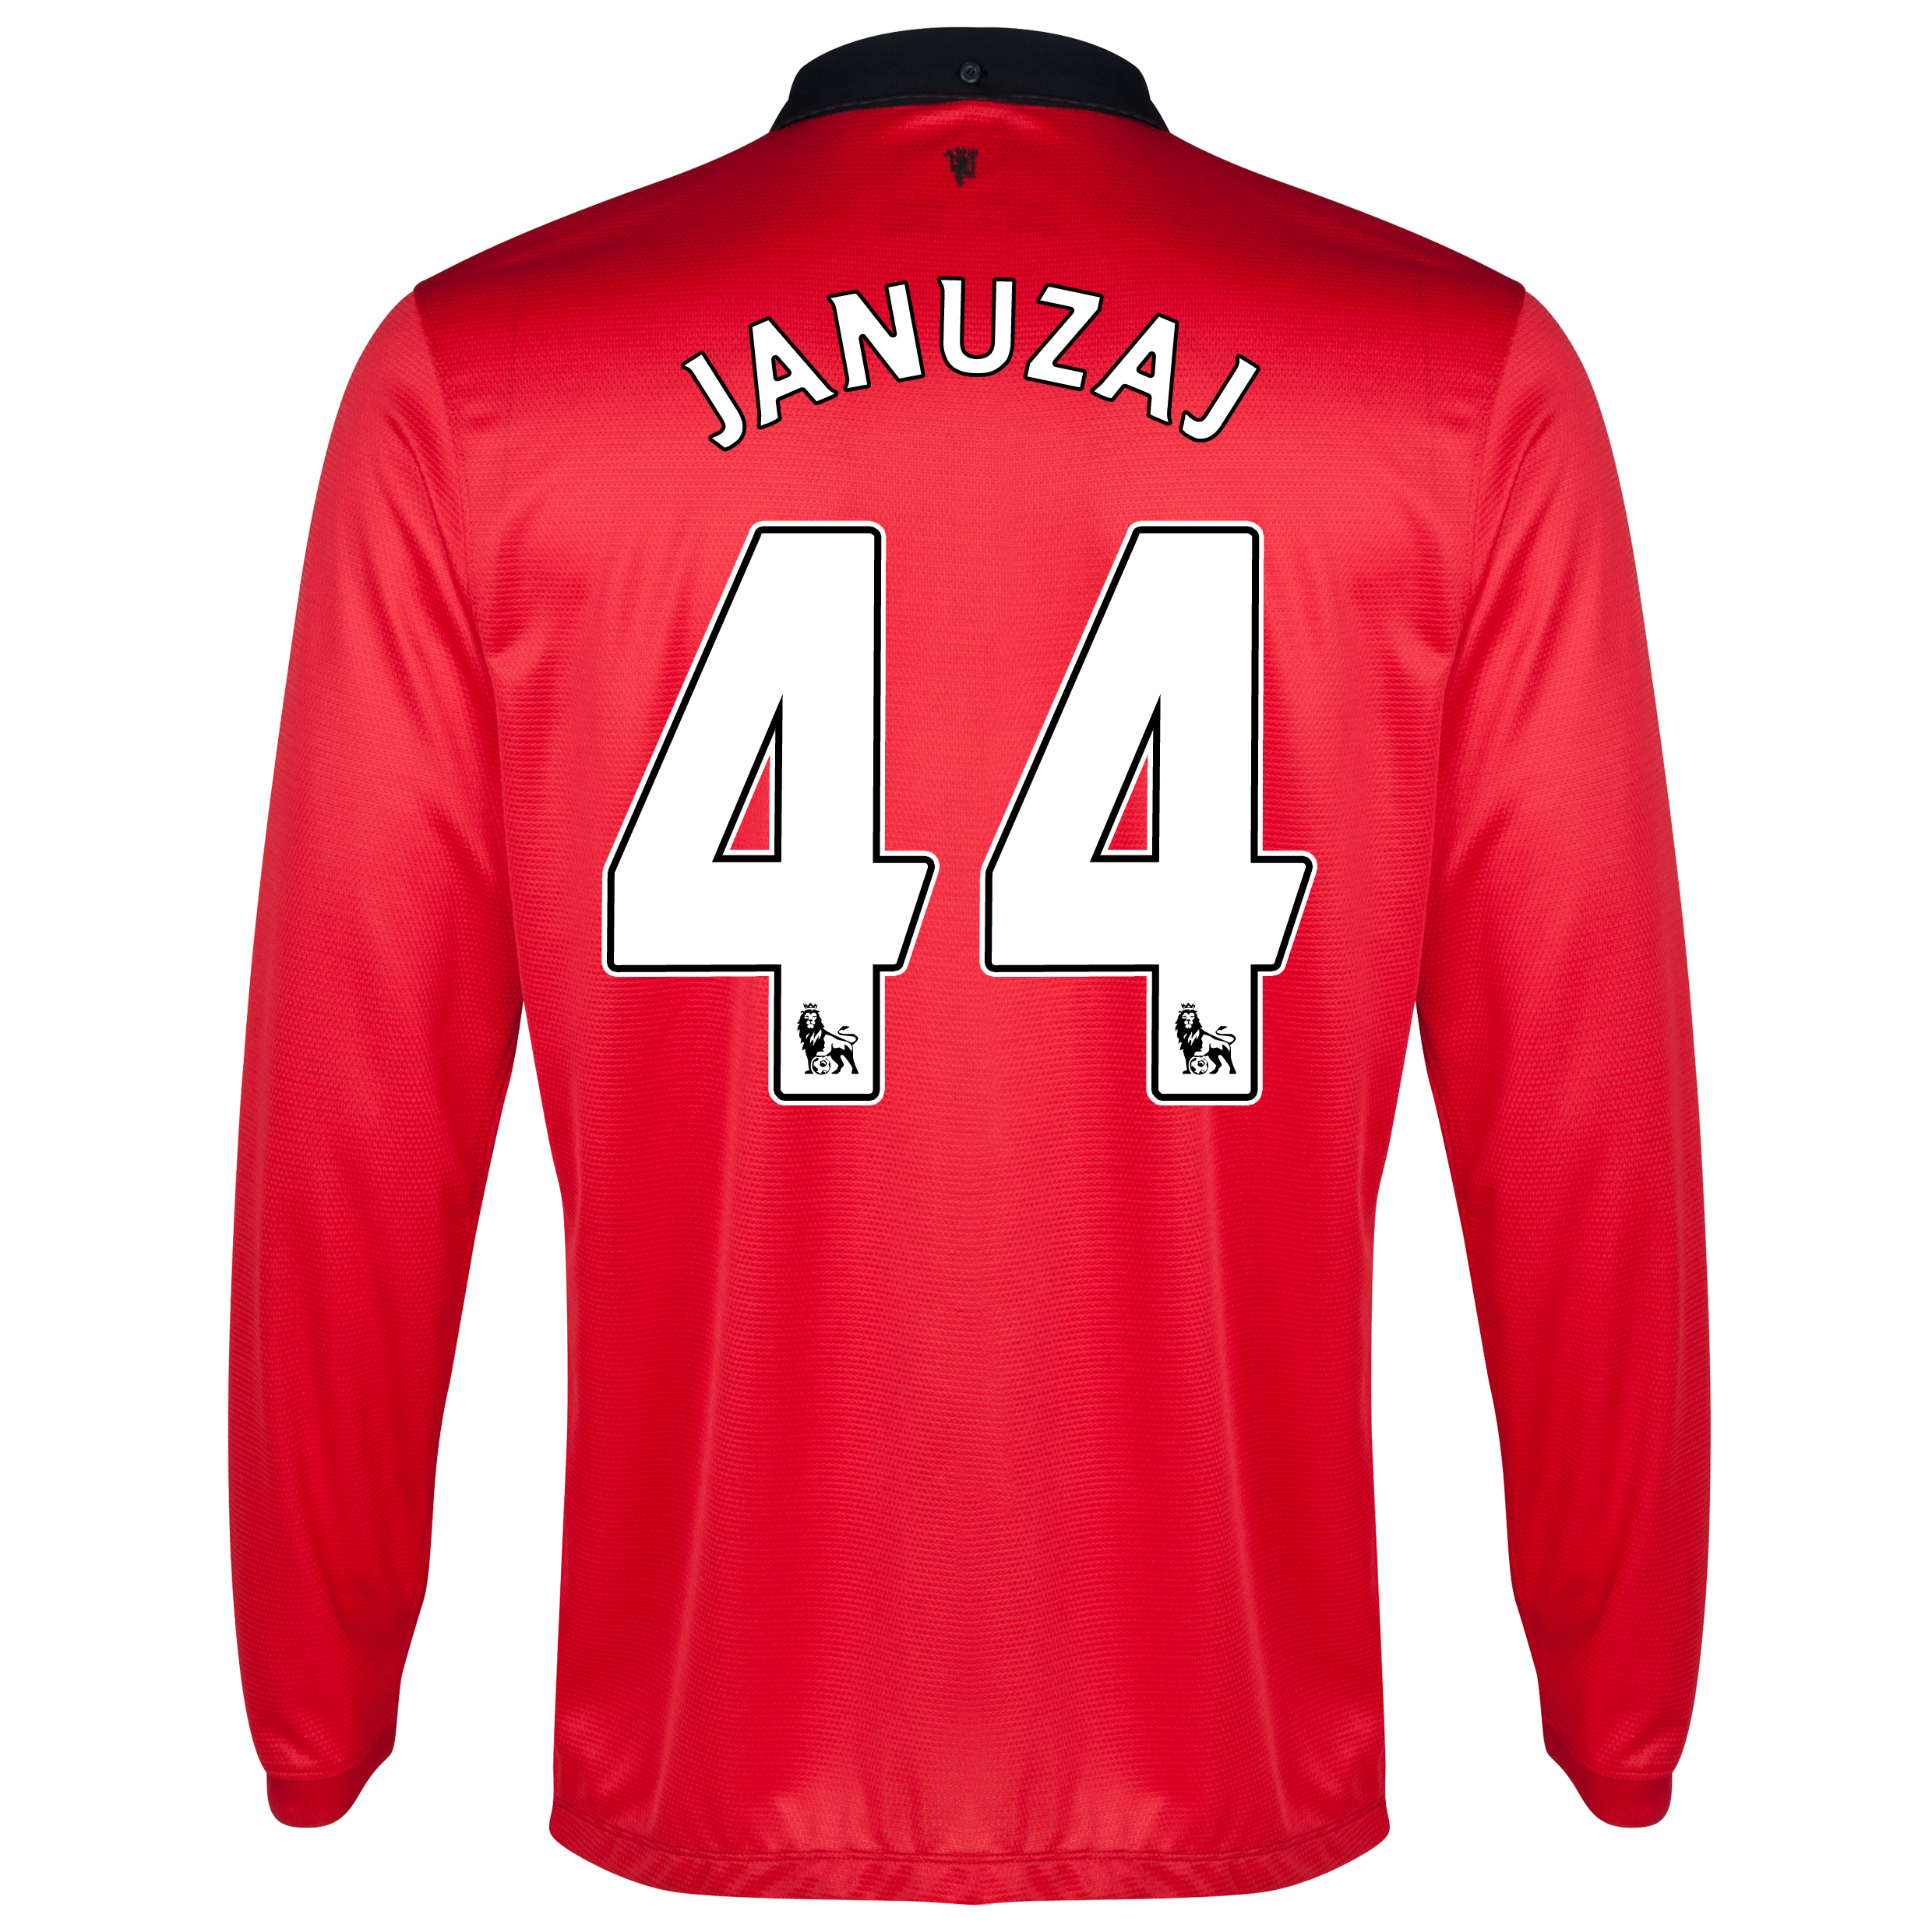 Manchester United Home Shirt 2013/14 - Long Sleeved - Kids with Januzaj 44 printing